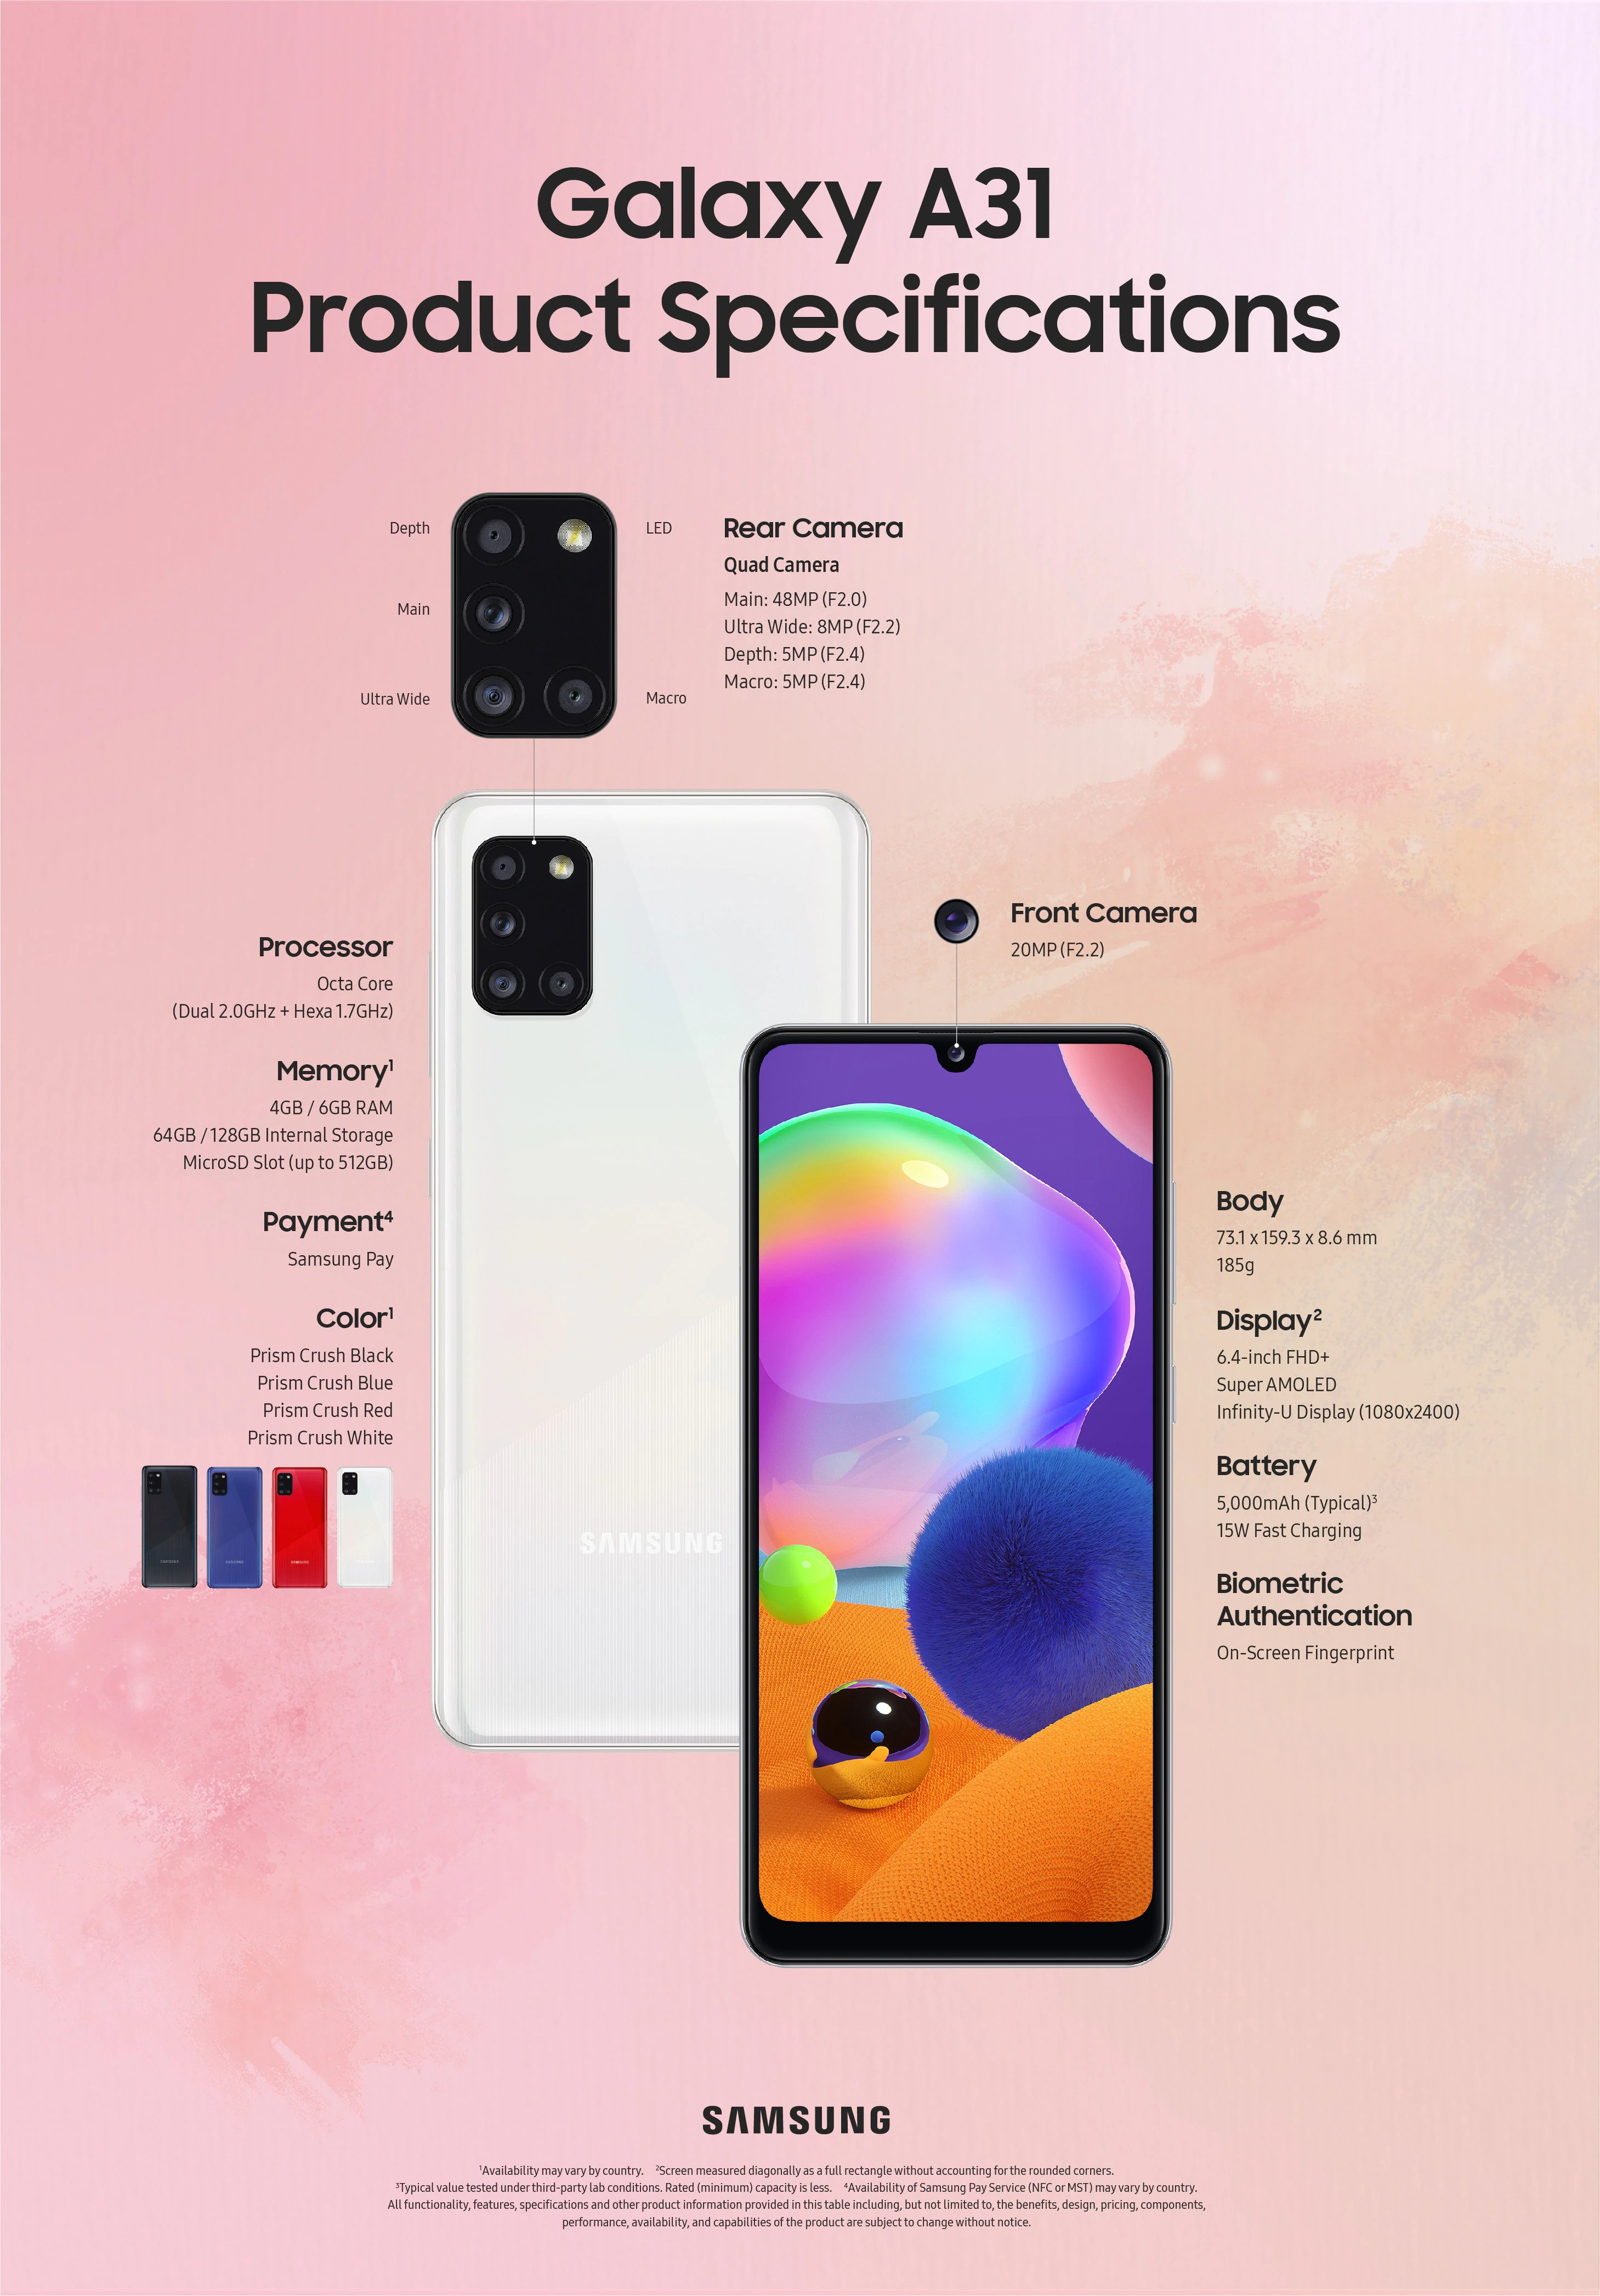 Galaxy A31 Product Specifications